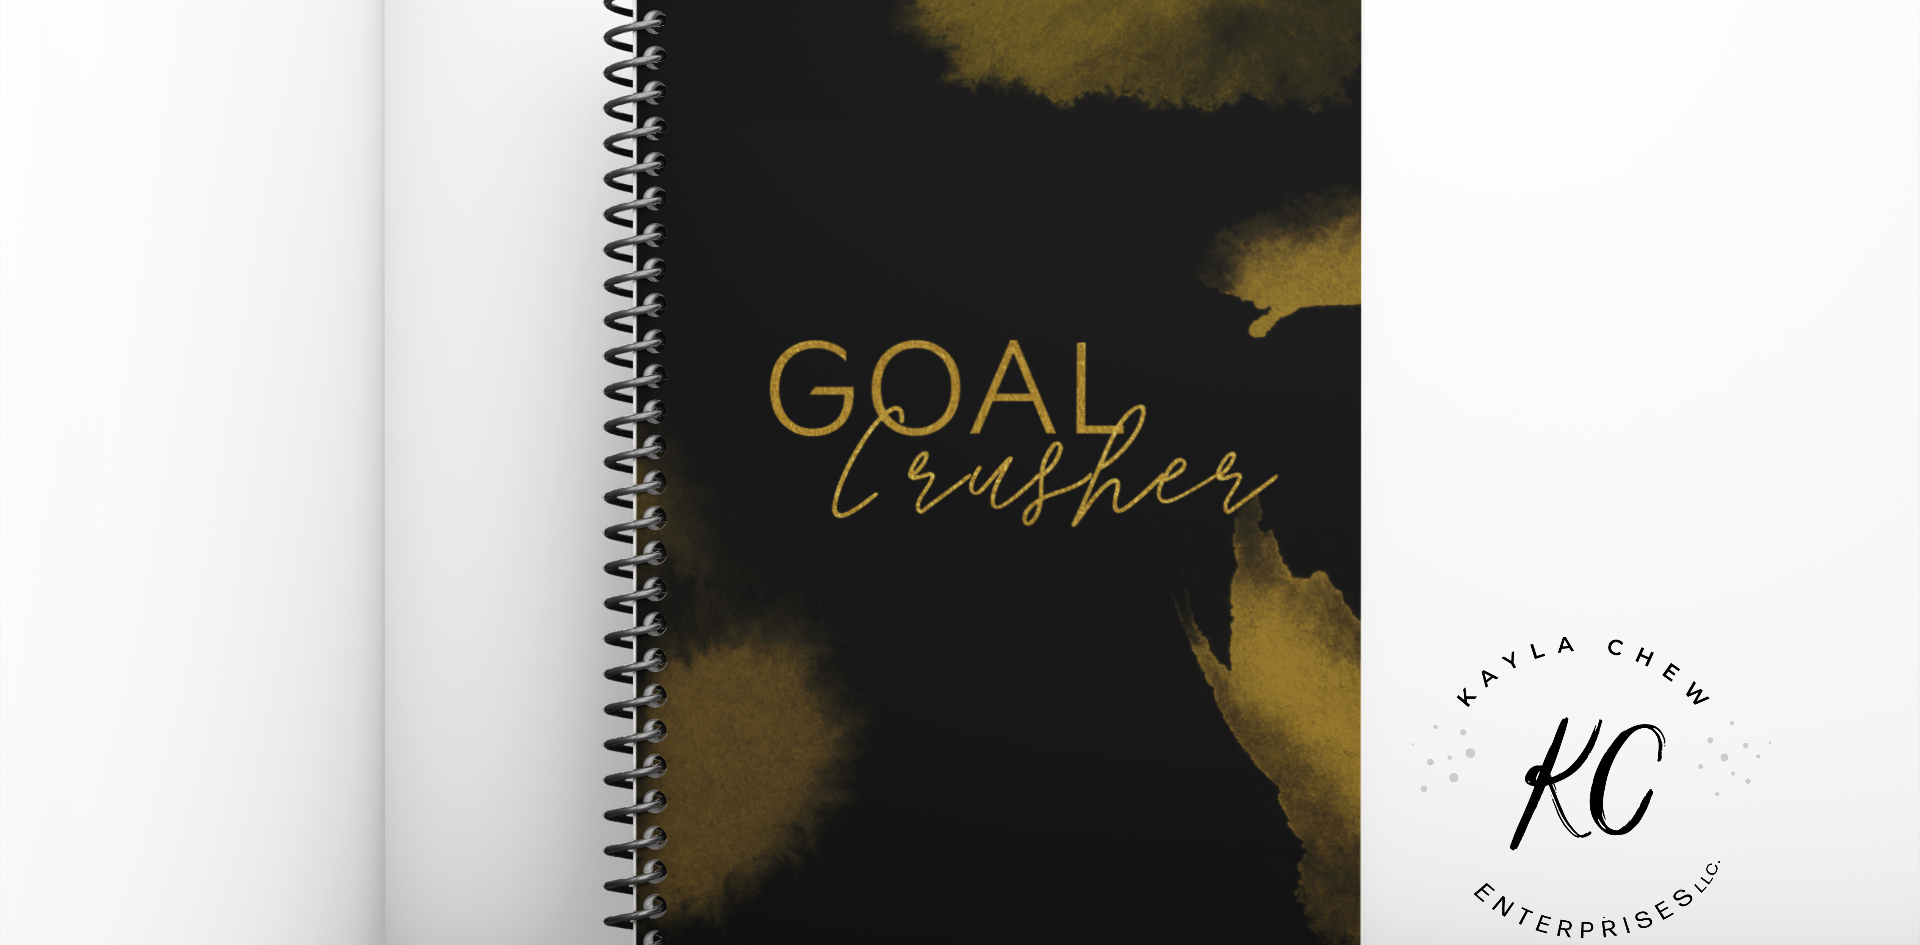 mockup-of-a-spiral-notebook-placed-again